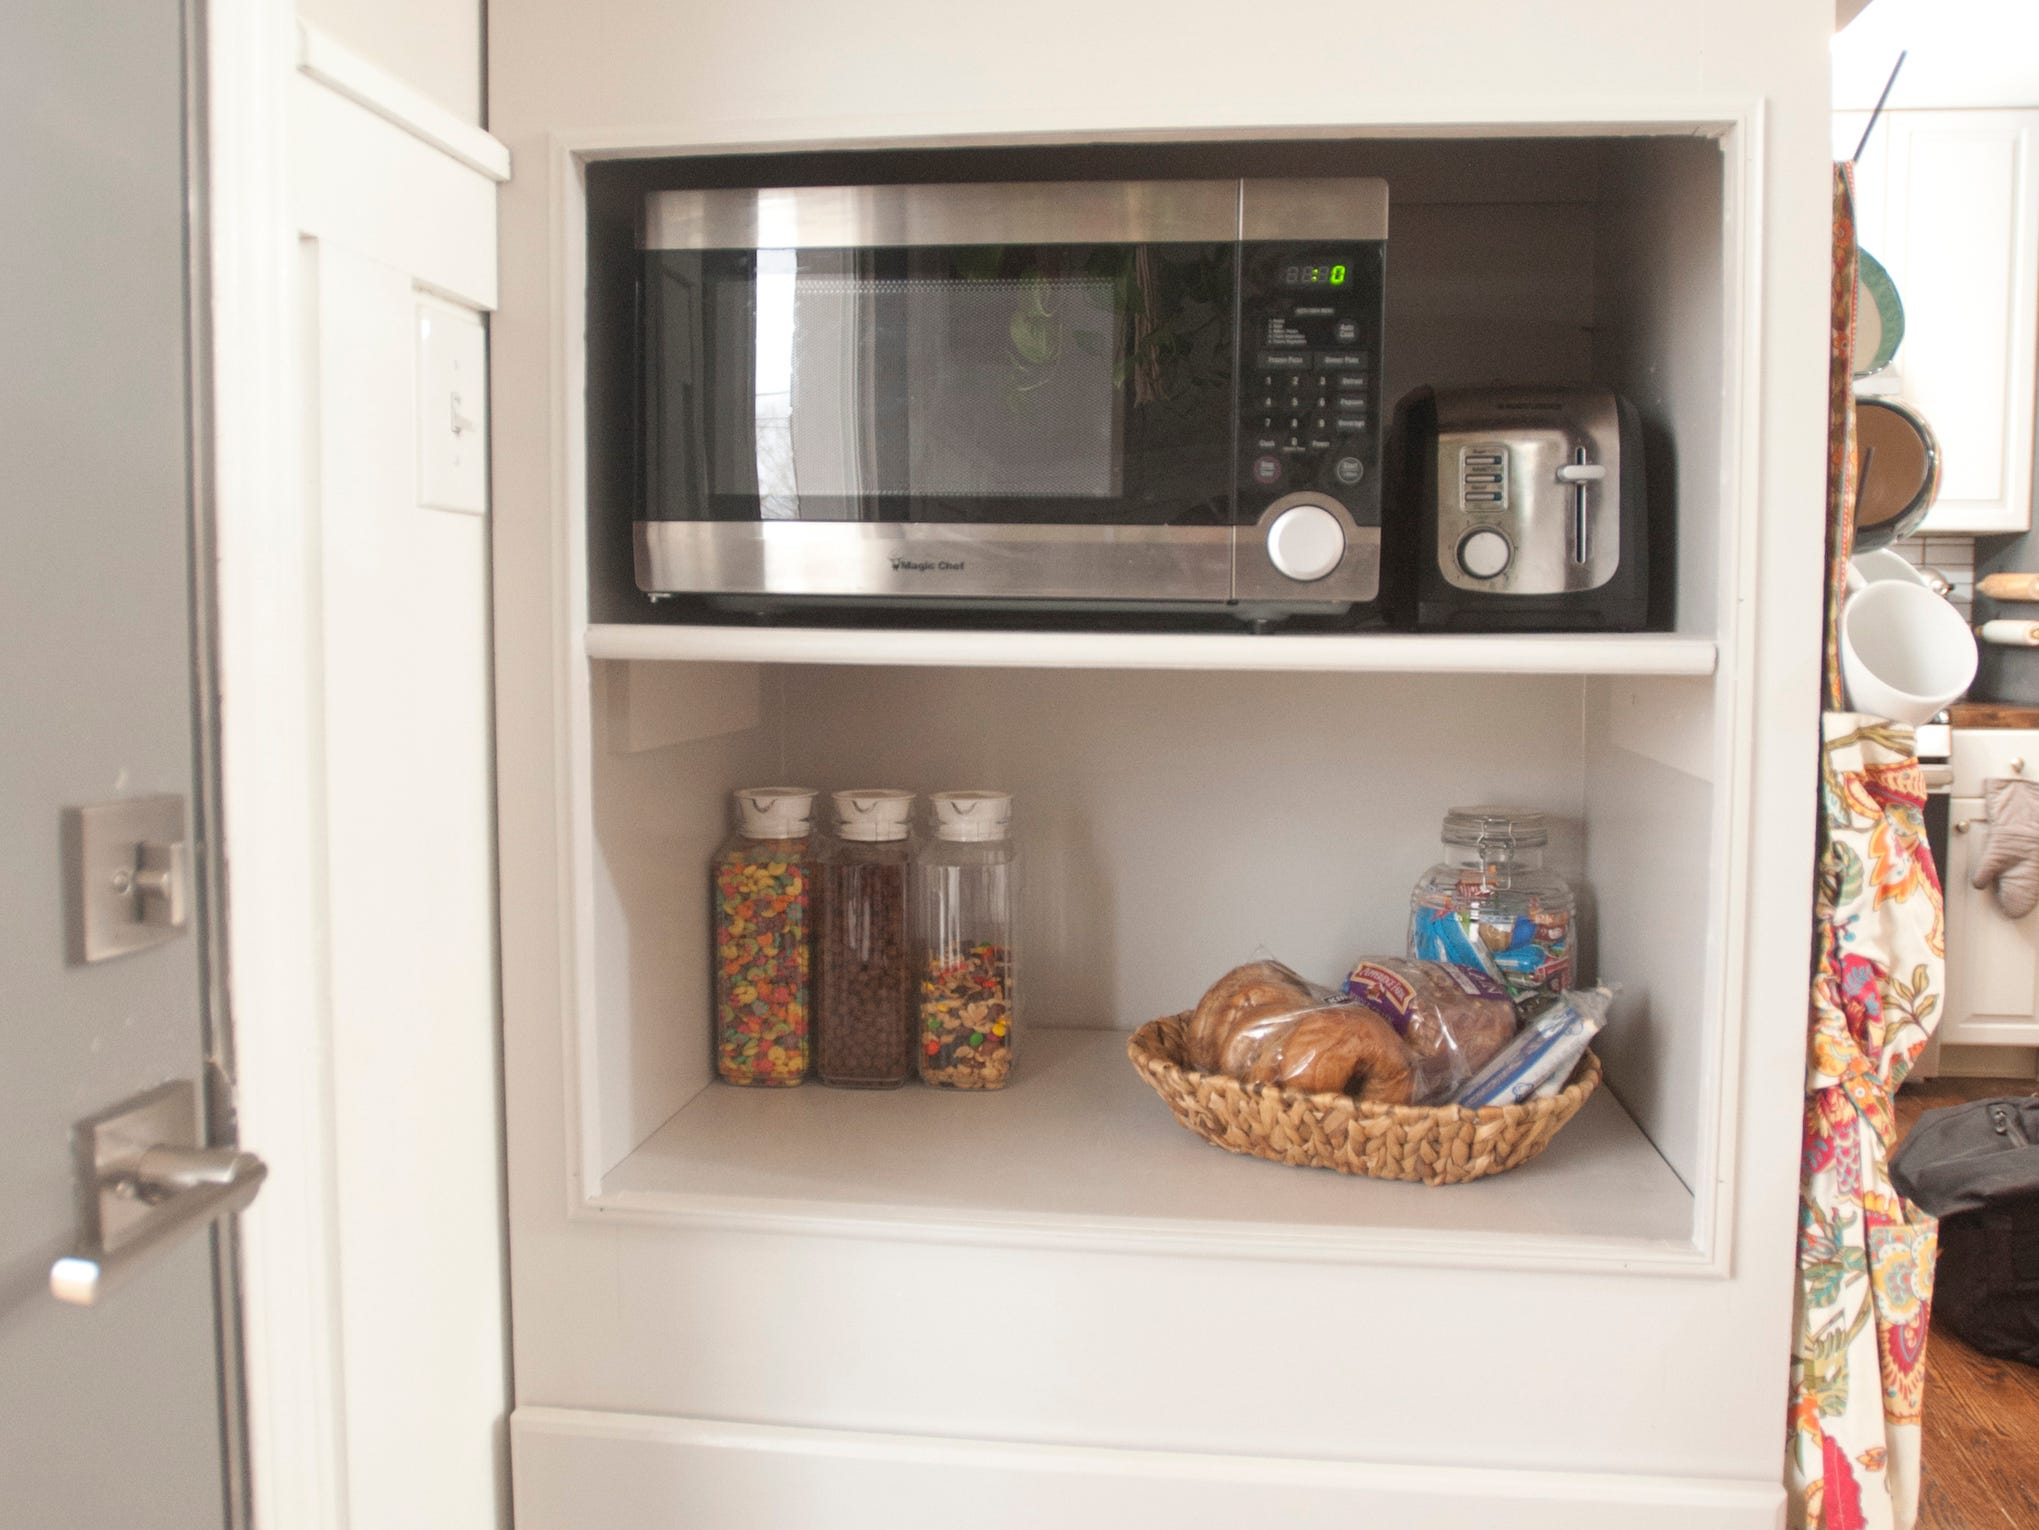 The built-in kitchen microwave cabinet provides ground to ceiling storage.